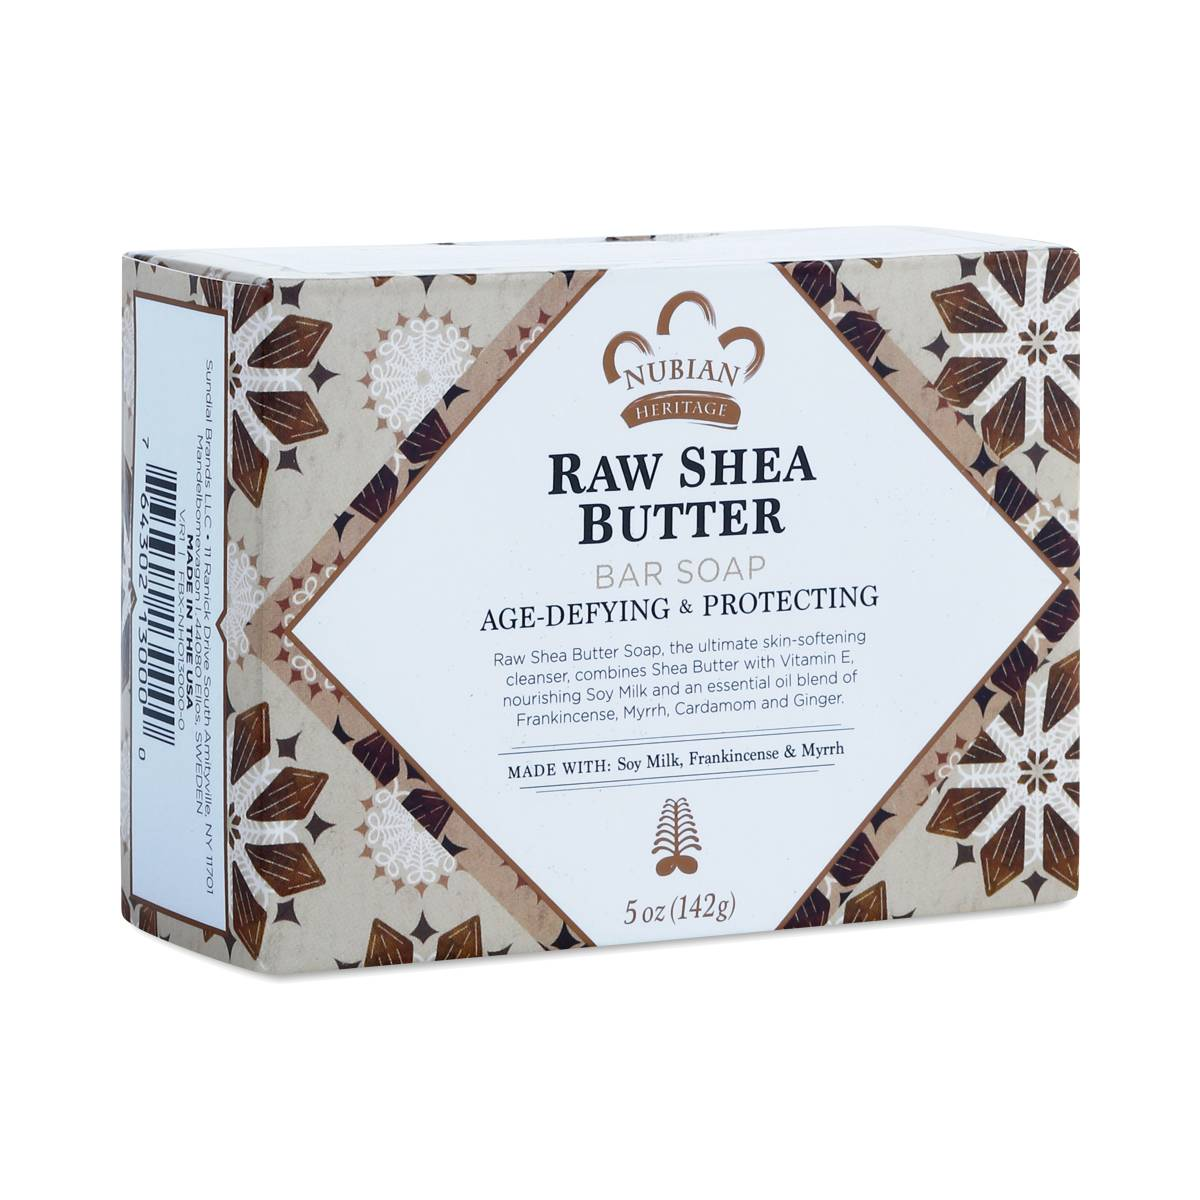 Raw Shea Butter Bar Soap By Nubian Heritage Thrive Market